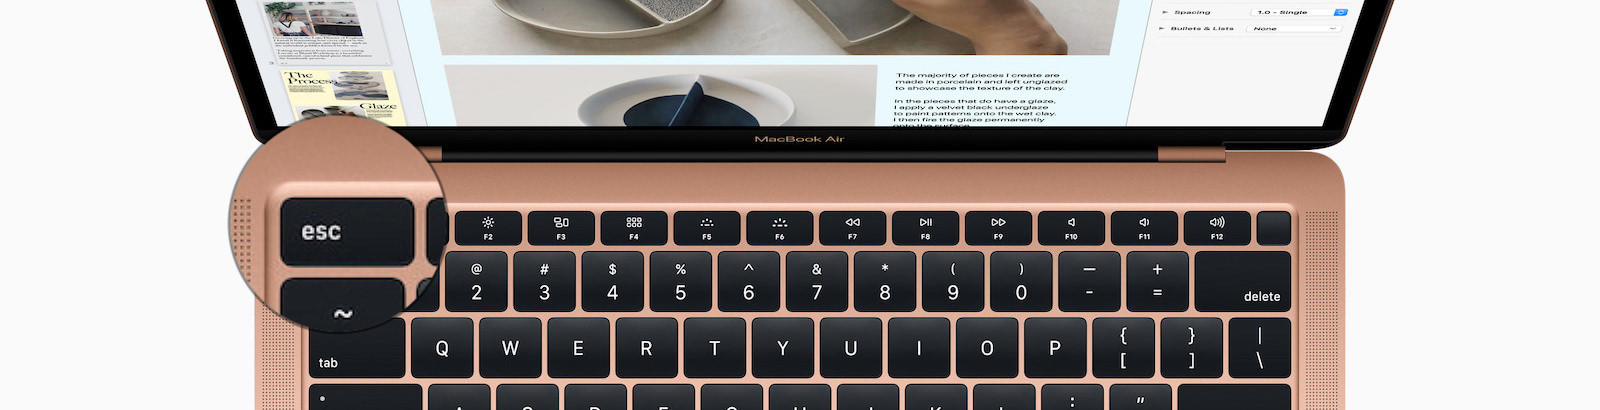 MacBook Air Keyboard with esc